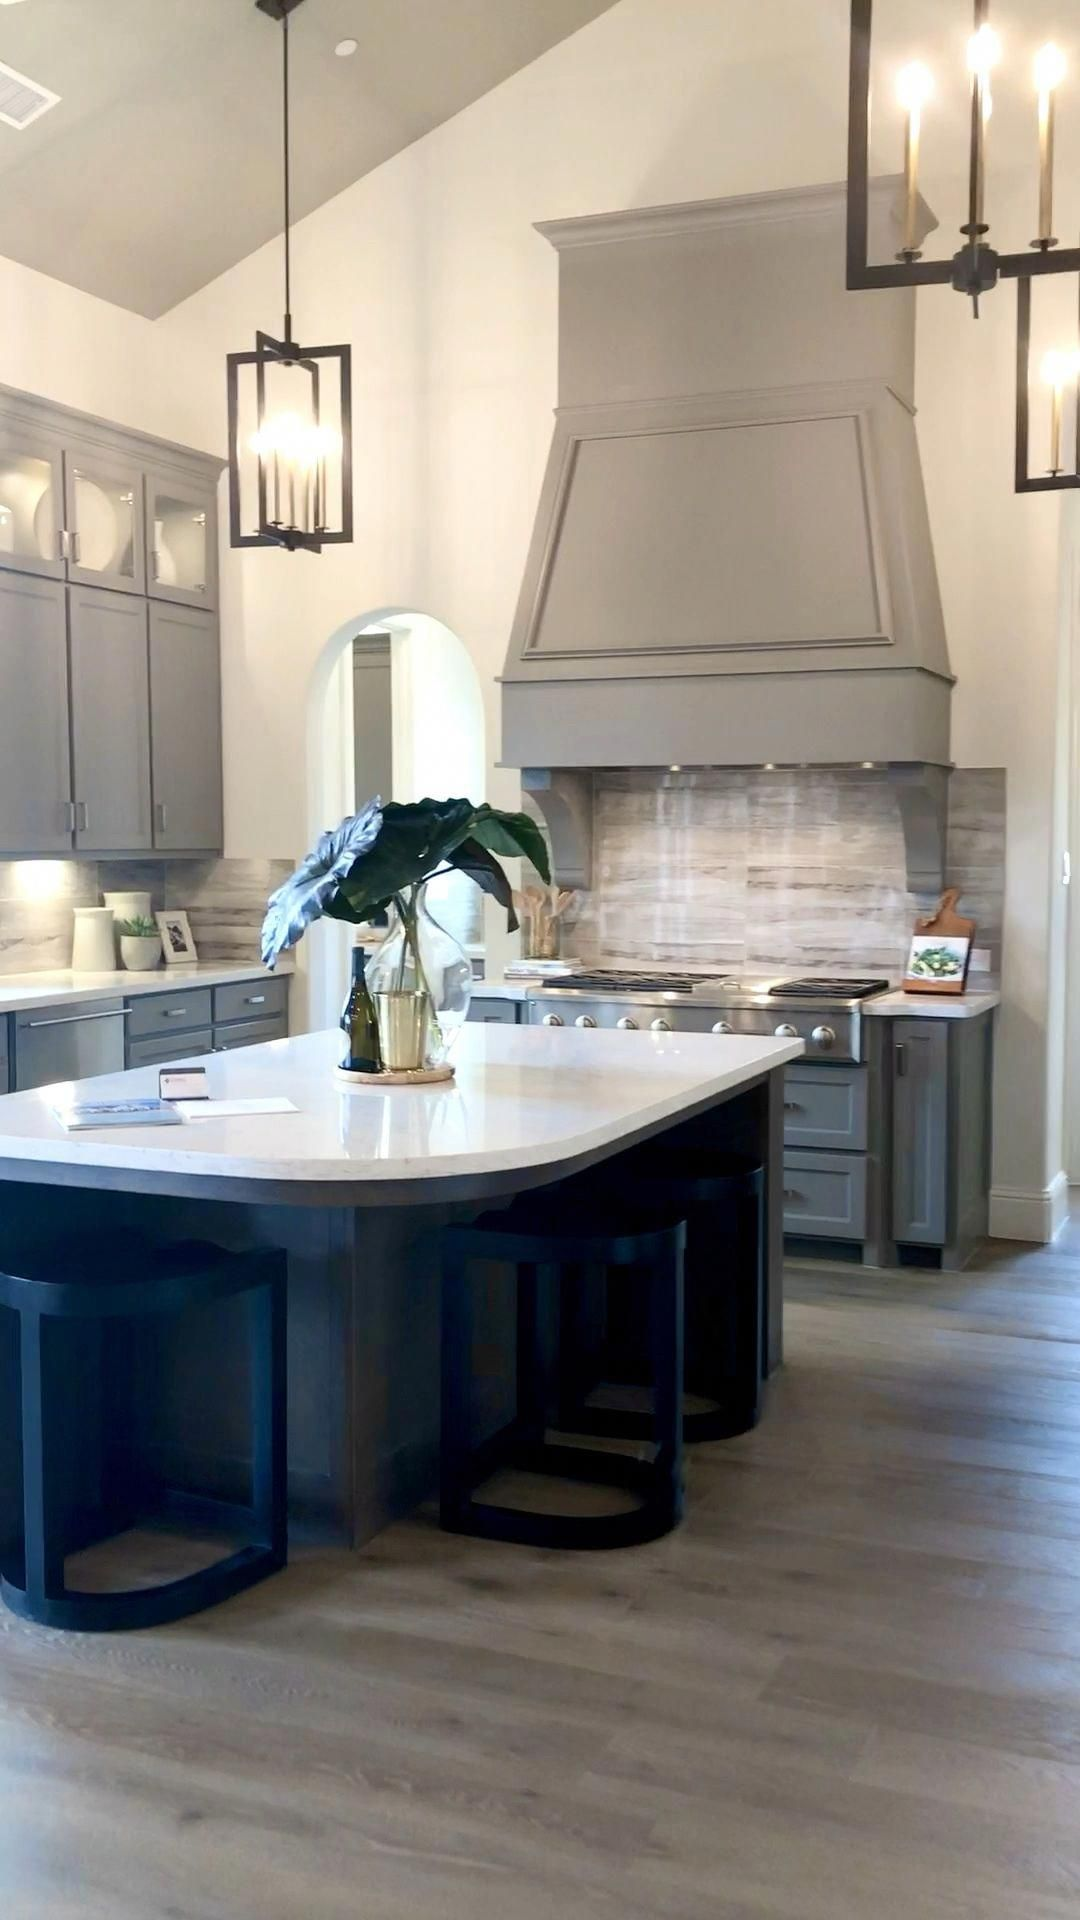 Receiving Room Interior Design: Pin On Property Remodeling Tips